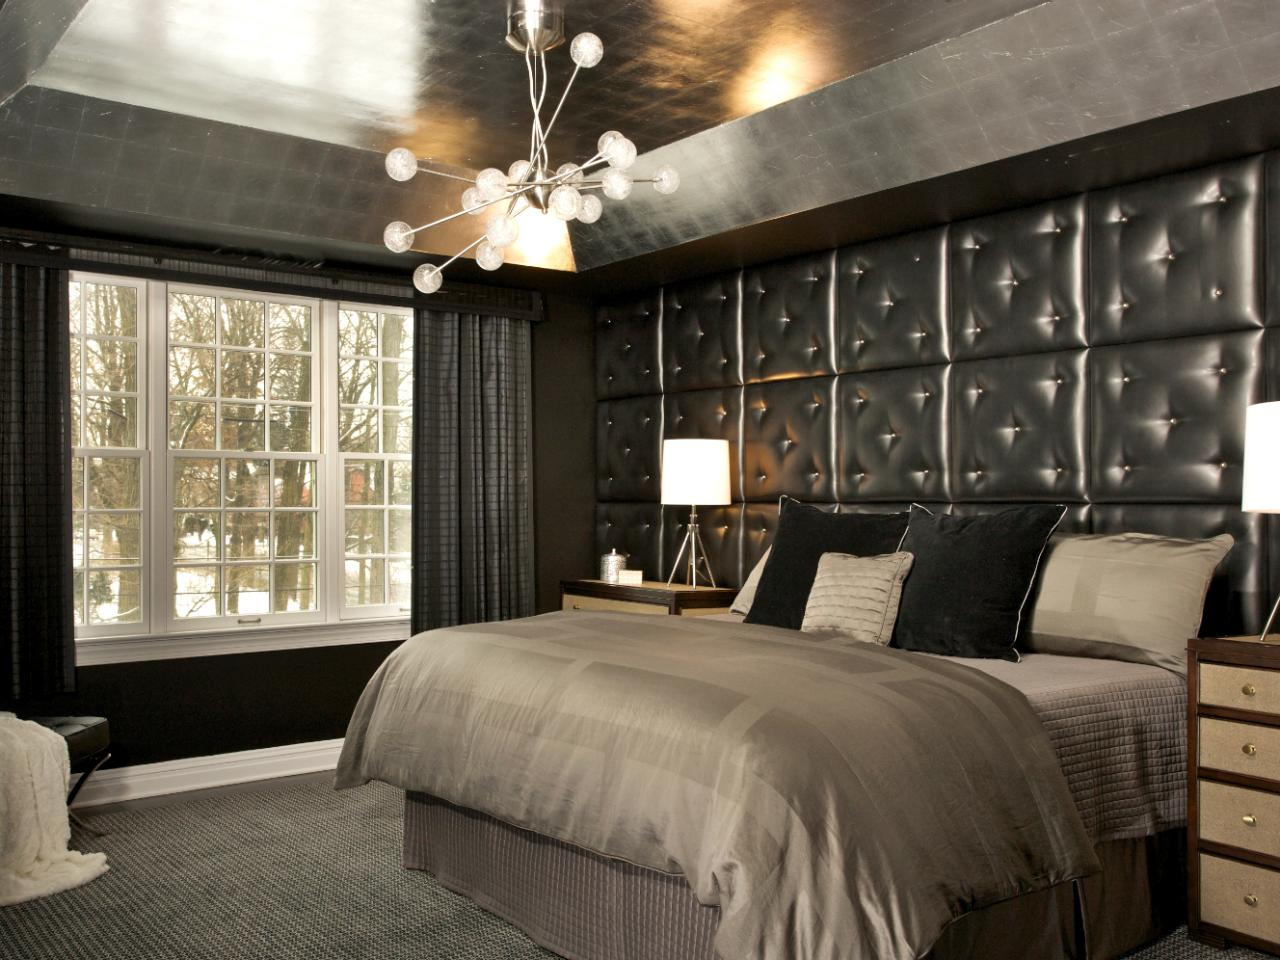 Nightclub Inspired Bedroom With Black Tufted Wall Hgtv